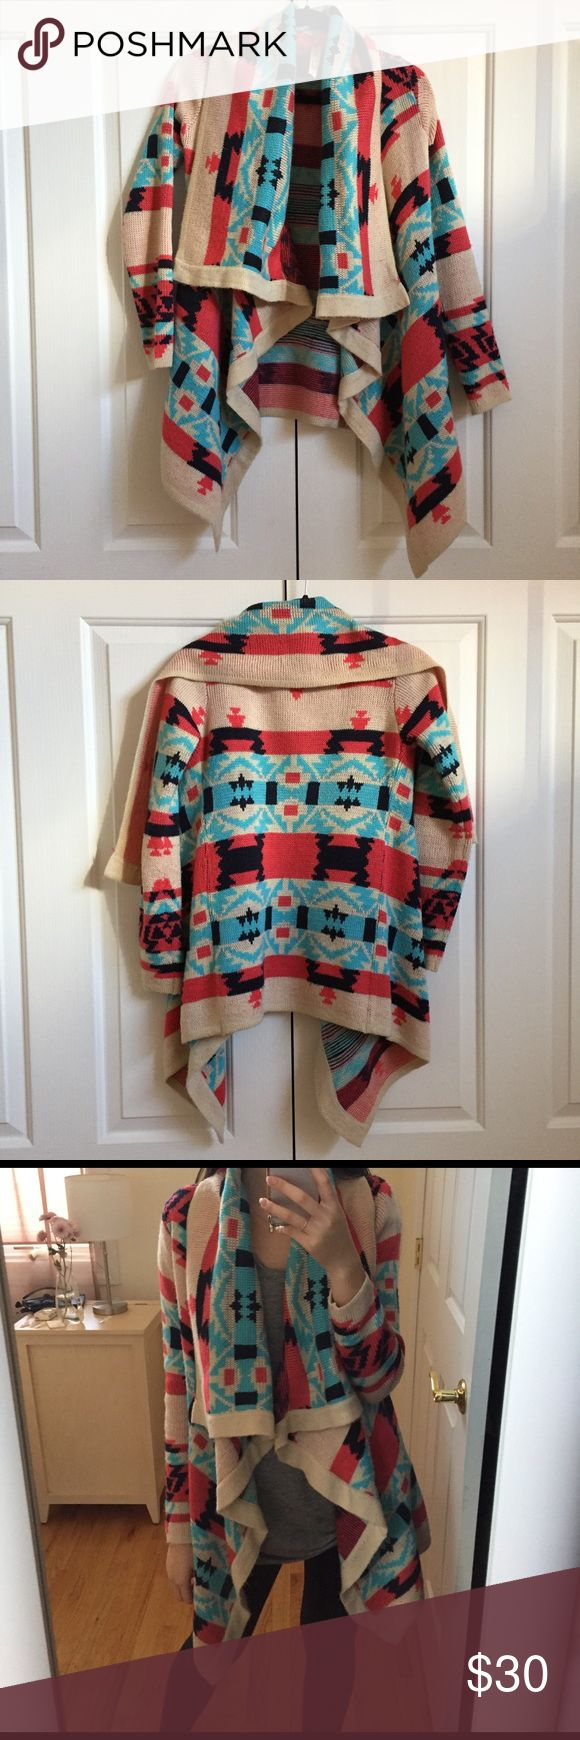 Aztec sweater Cute open front/waterfall sweater cardigan. Wears well with jeans and riding boots Sweaters